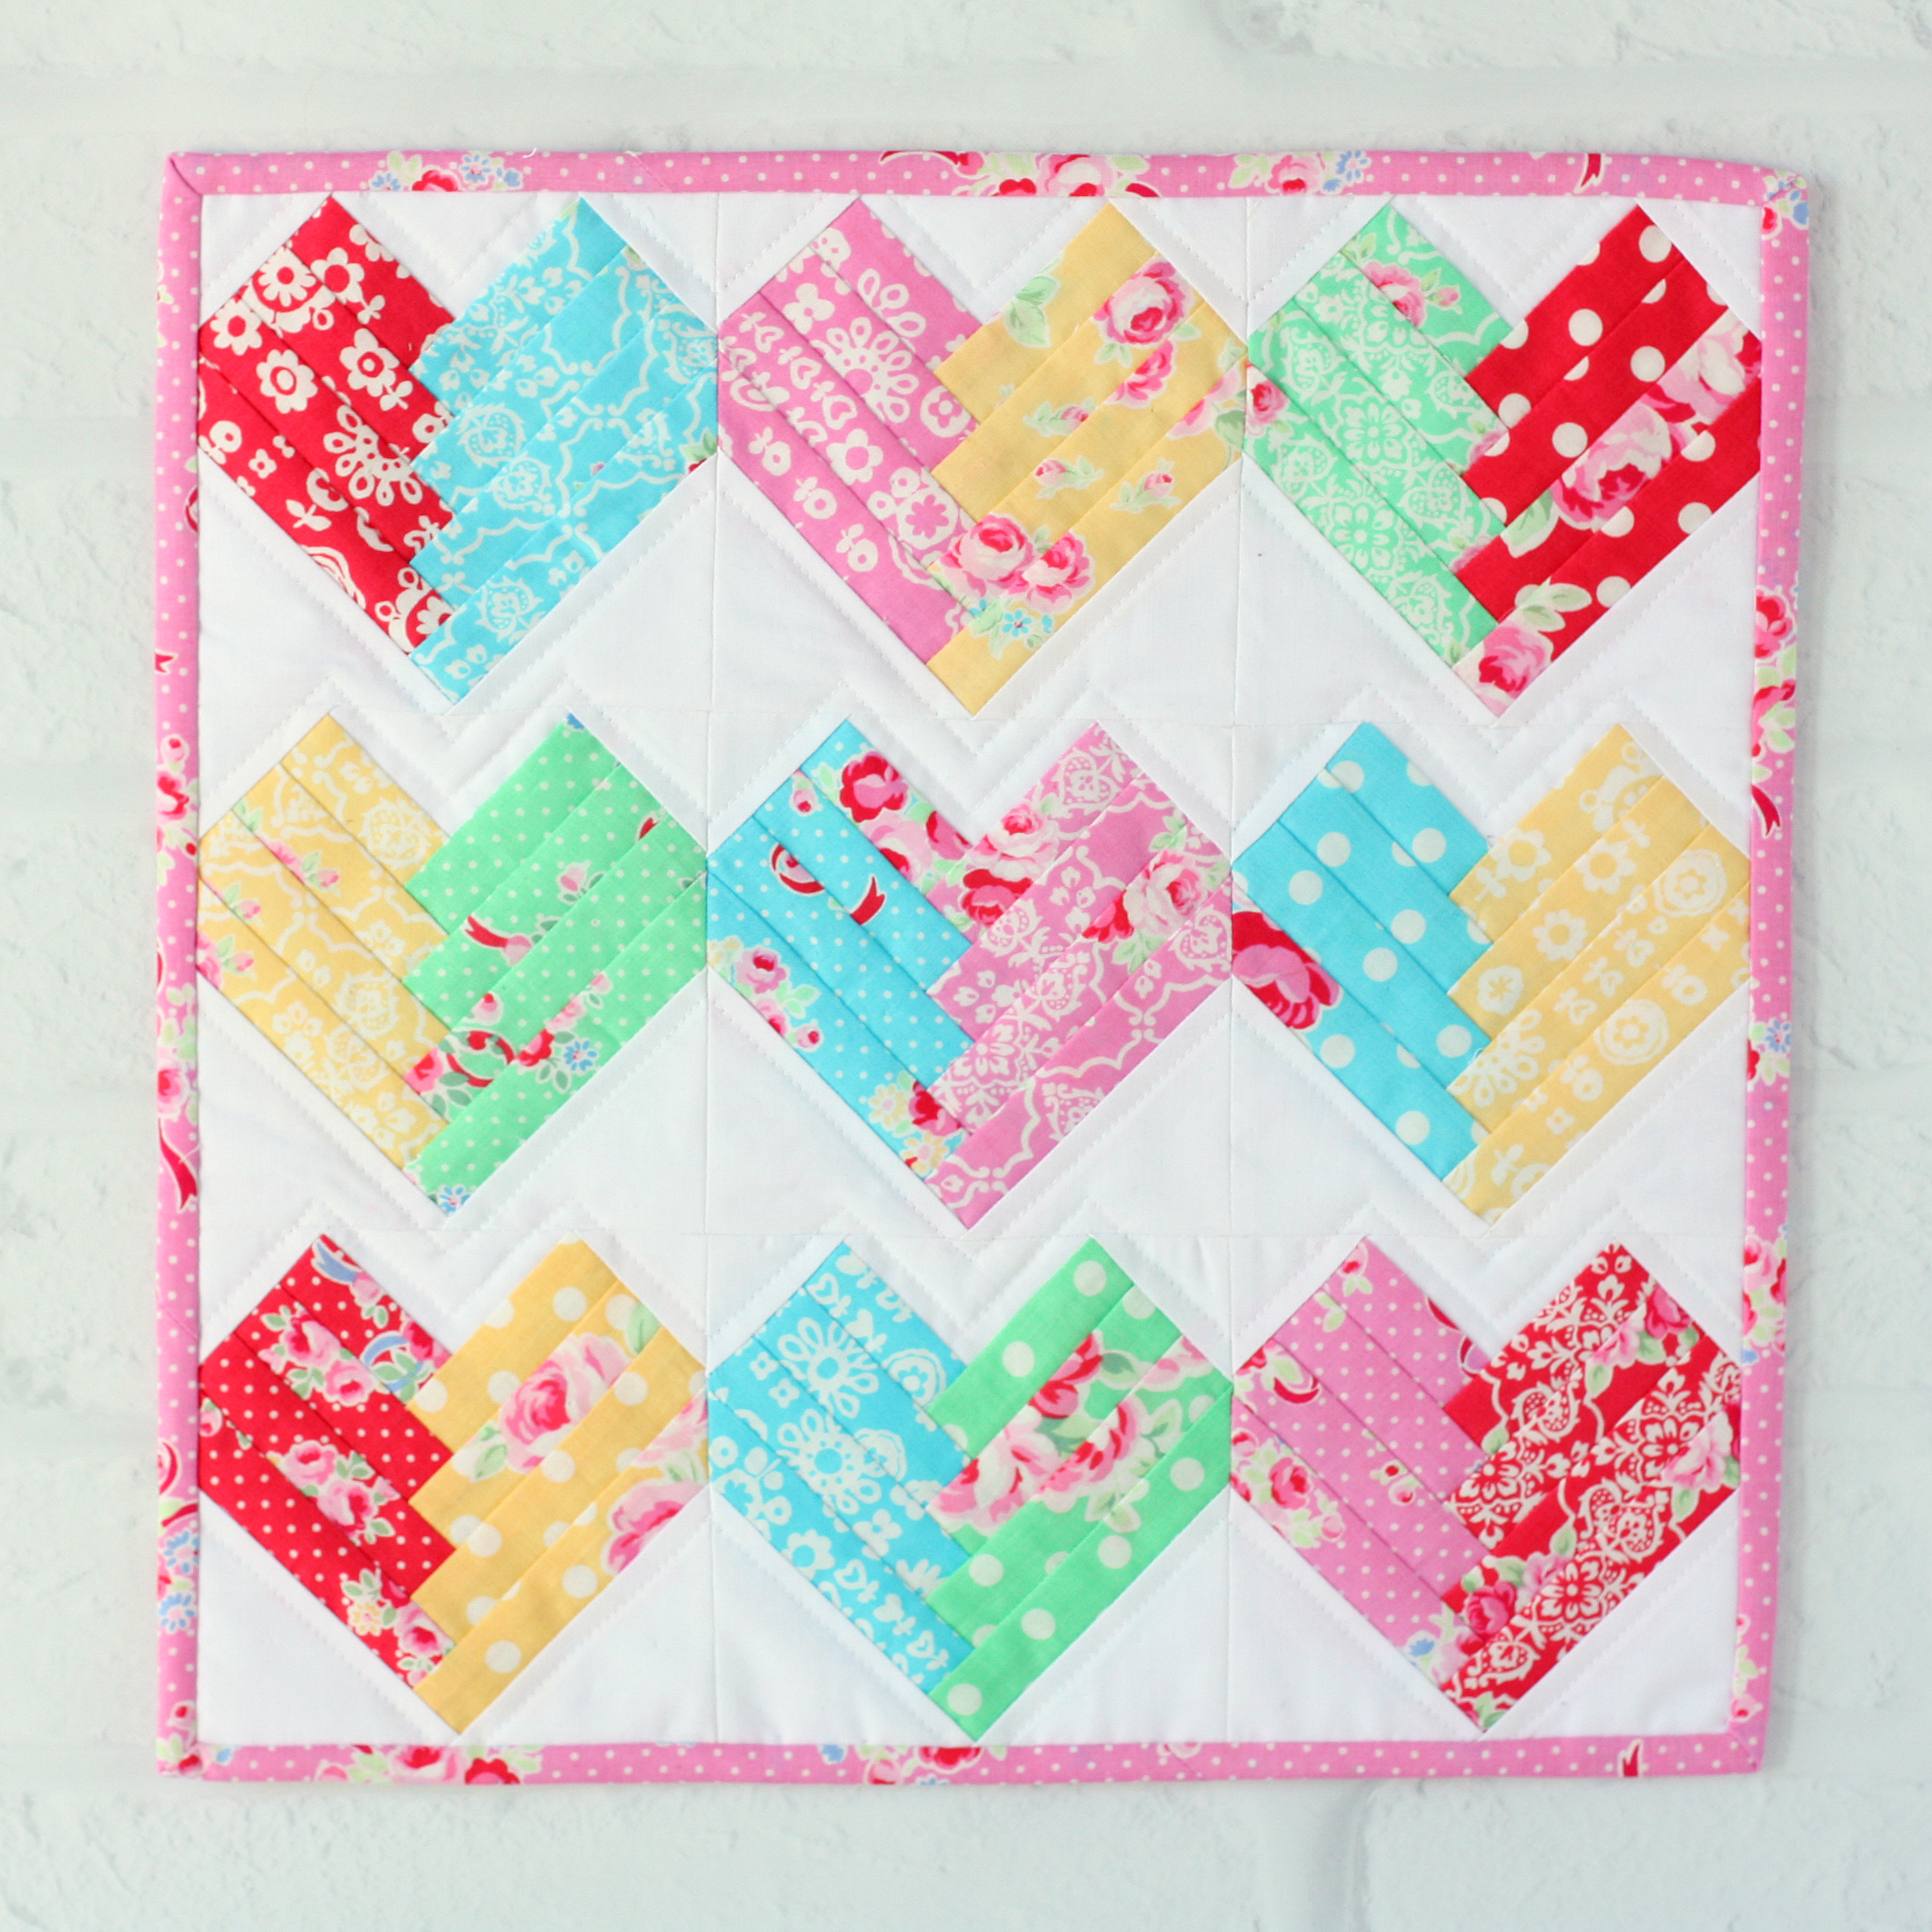 Heart of the Home Mini Quilt- Pattern available from www.etsy.com/shop/aspoonfullofsugar